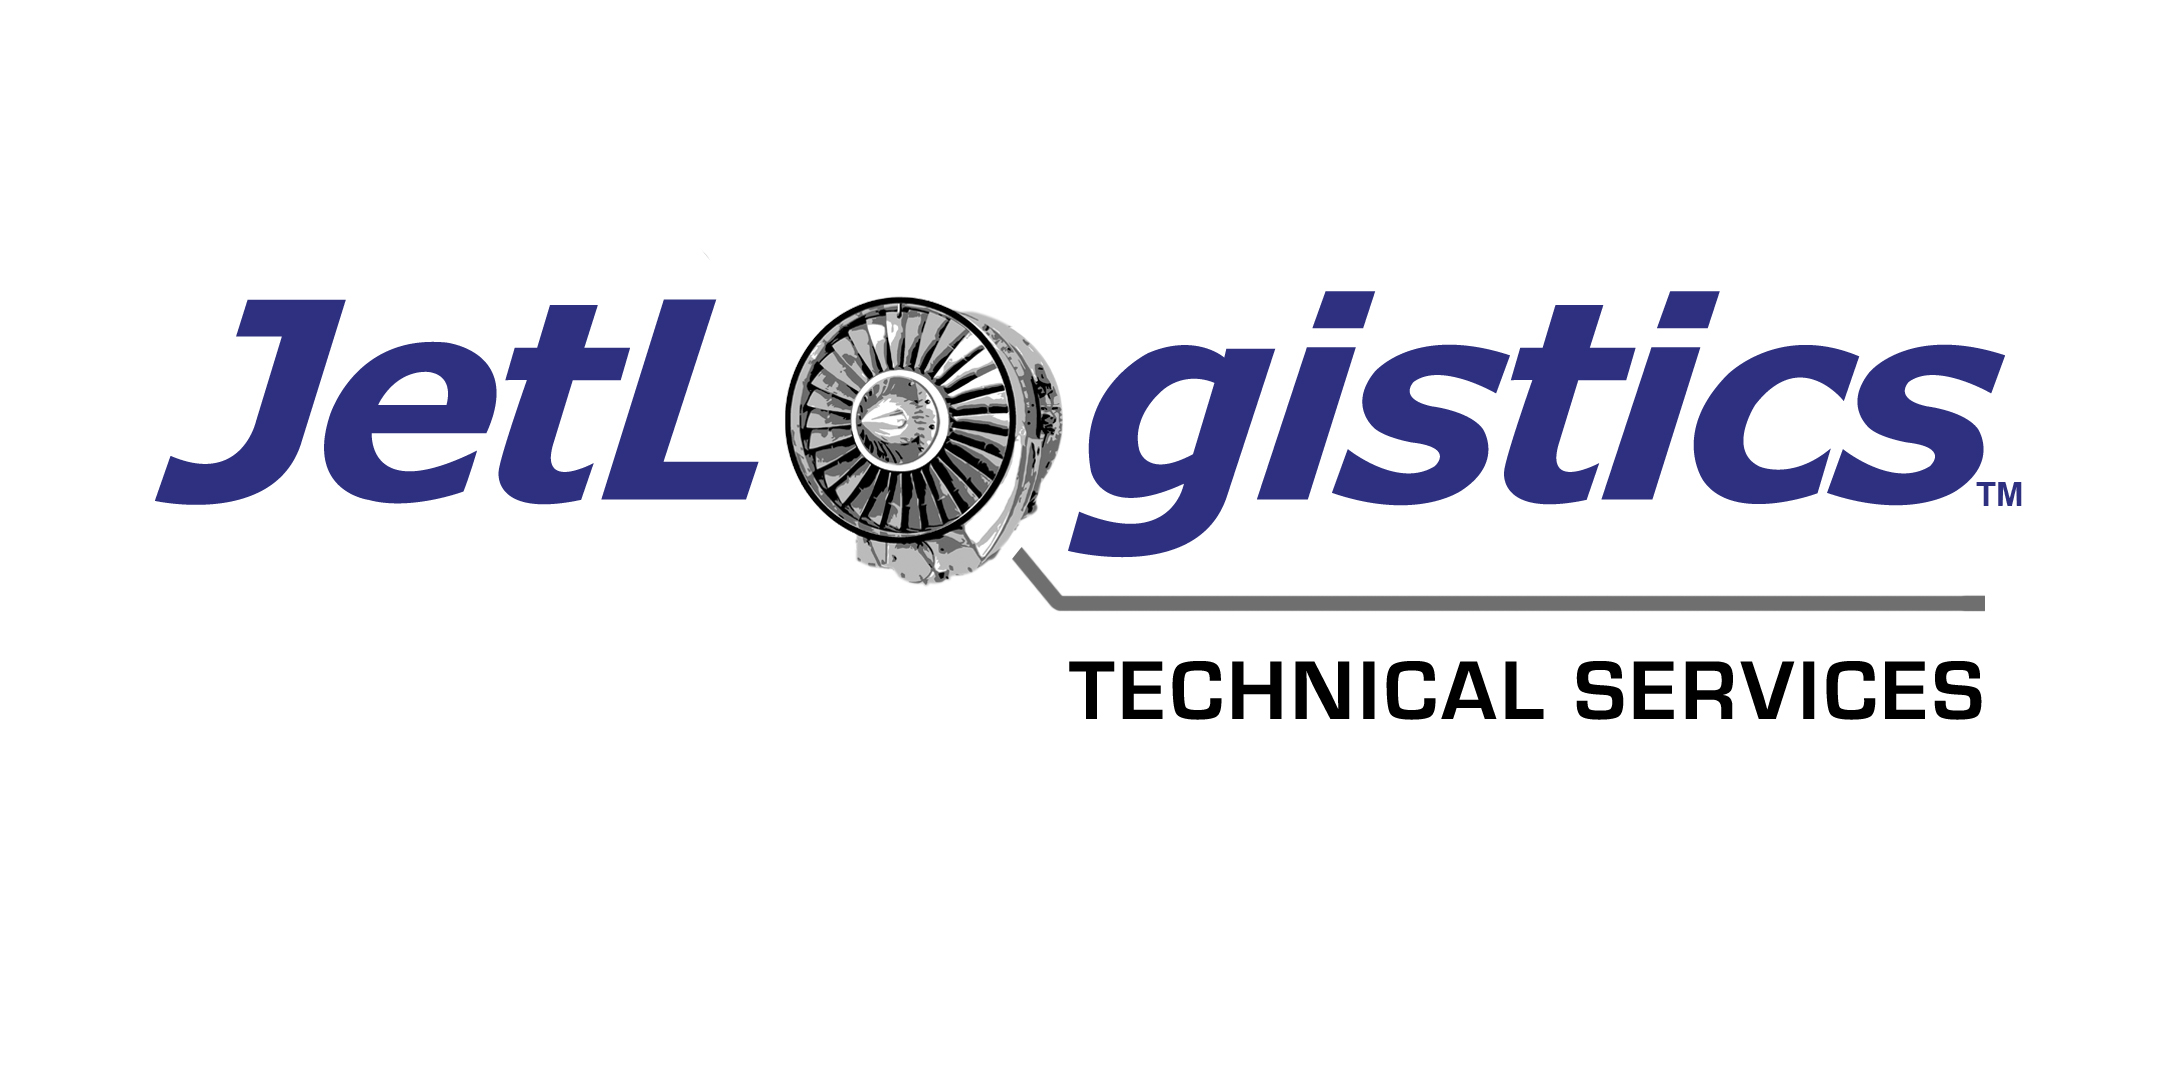 Jet Logistics Technical Services